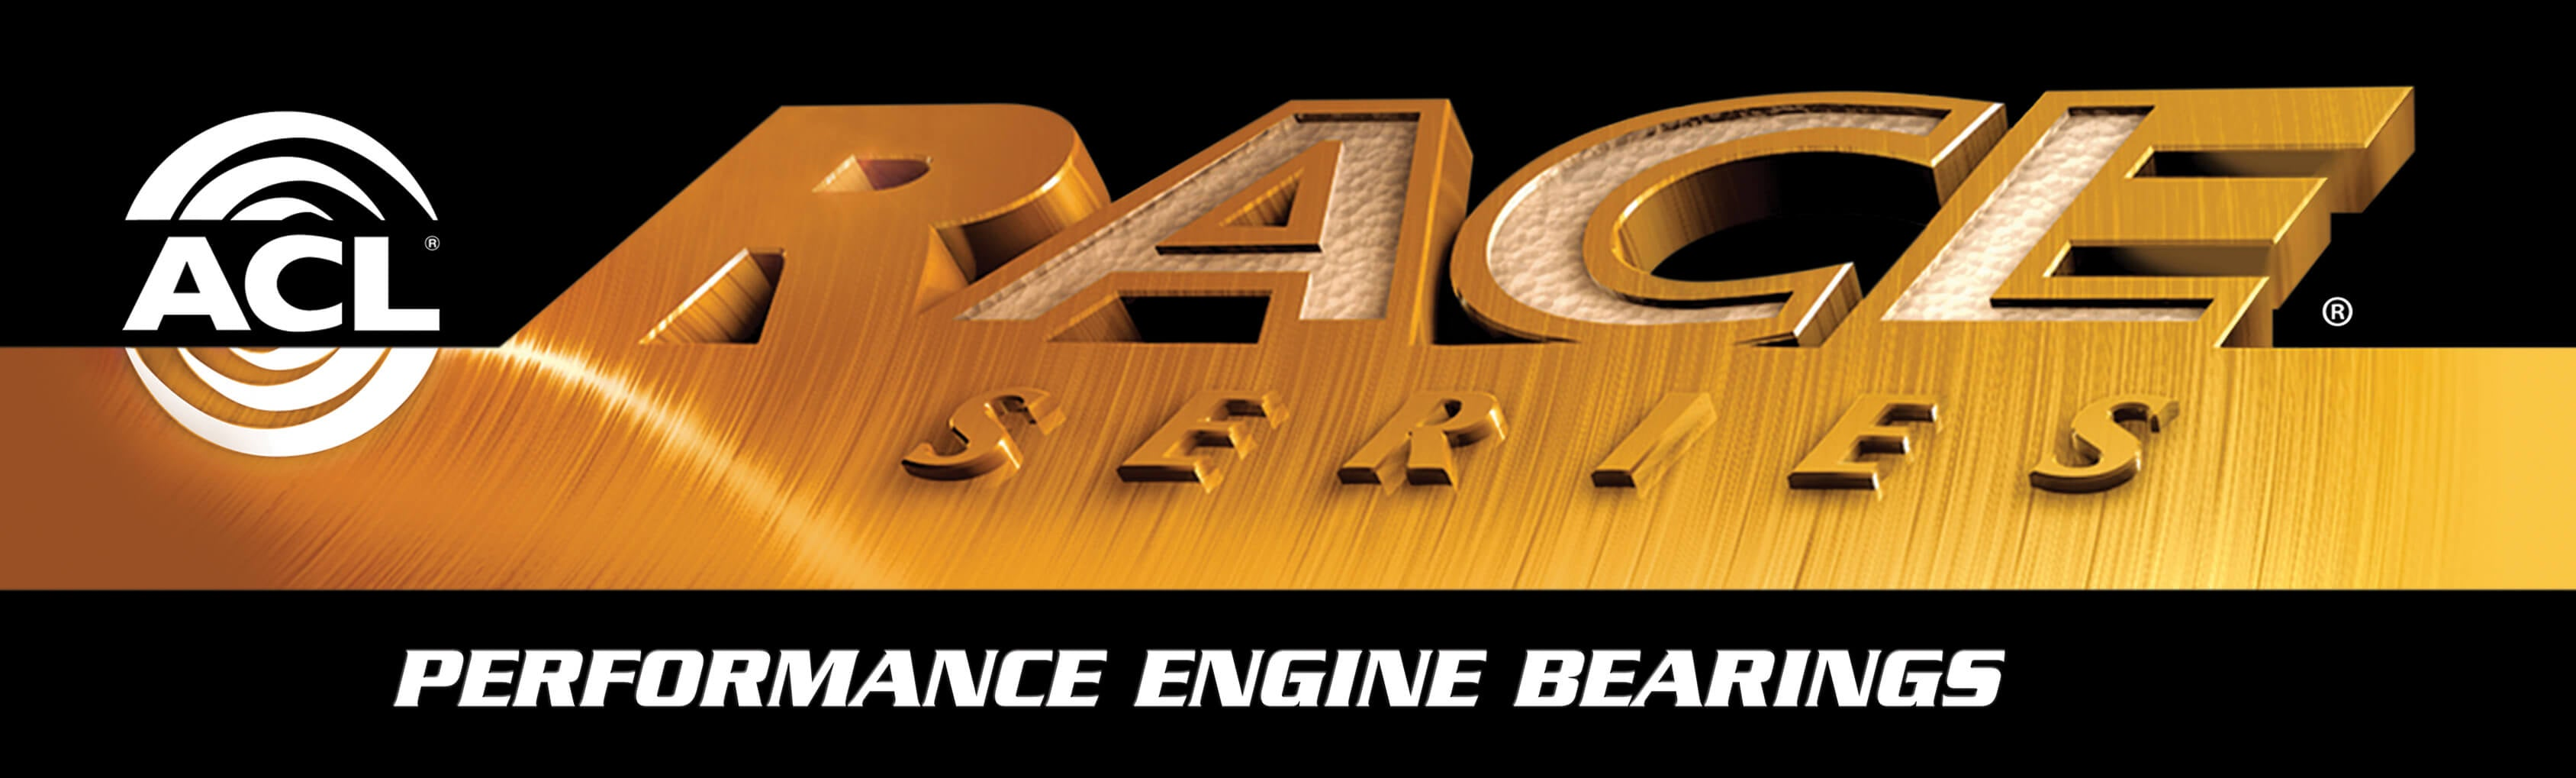 ACL Race Series Engine Bearings